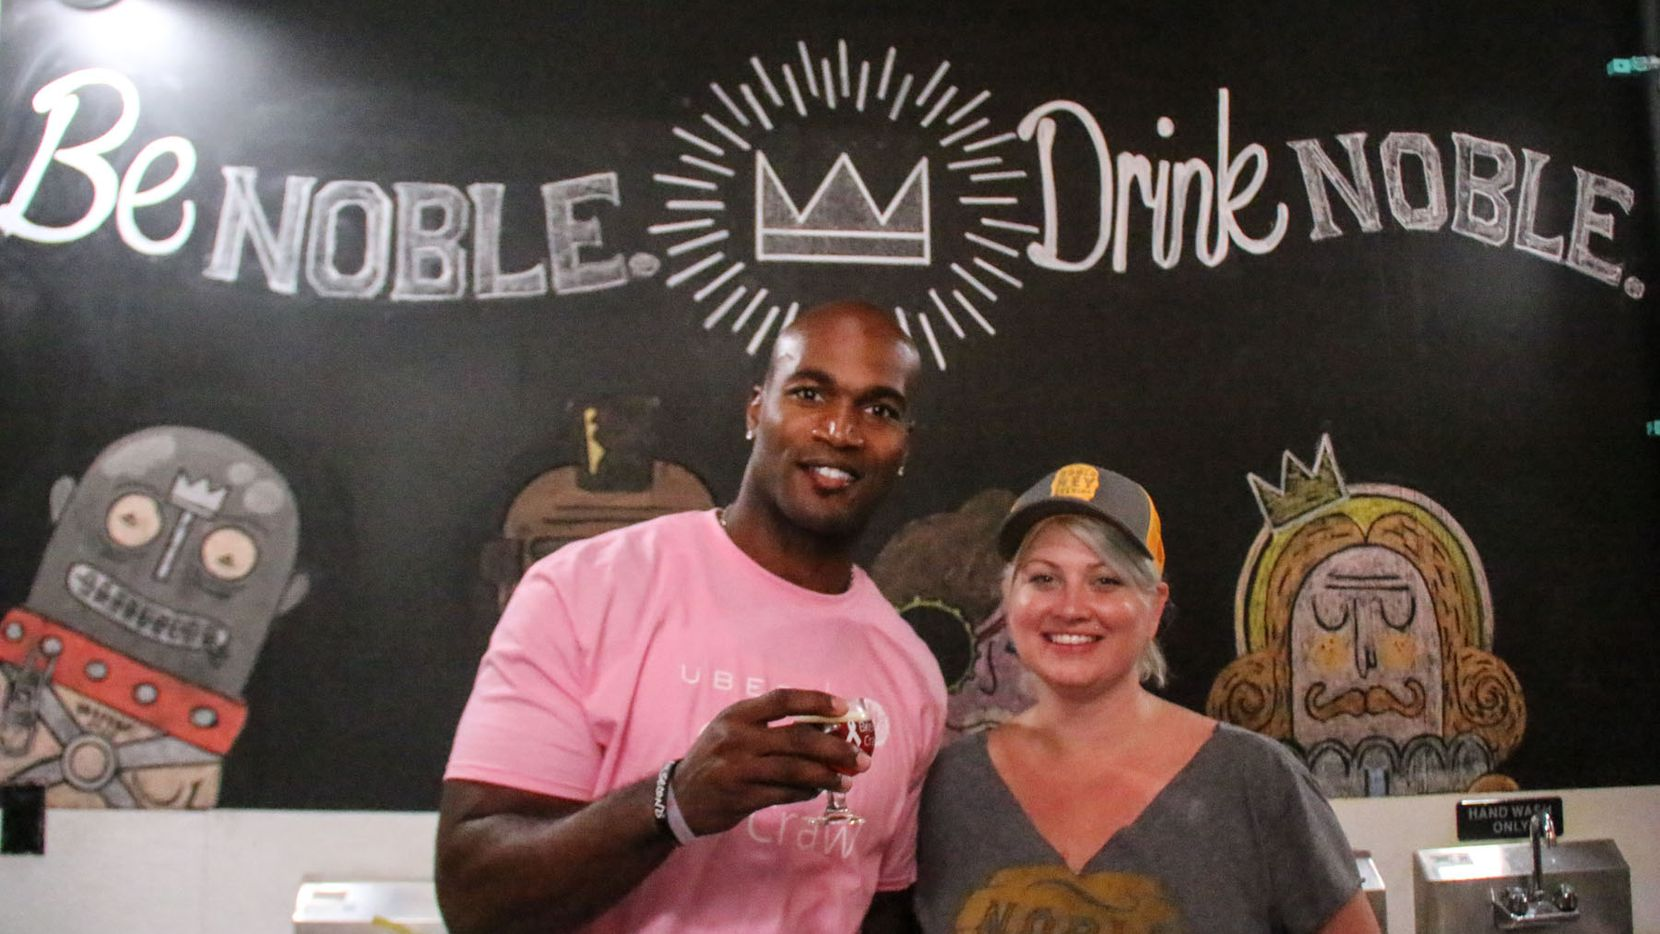 Bradie James posed with Michelle Carrow at Noble Rey Brewing Co during the Innaugural Brew Crawl for Breast Cancer put on by Dallas Brew Scene with proceeds benefitting former Dallas Cowboys Bradie James Foundation 56.